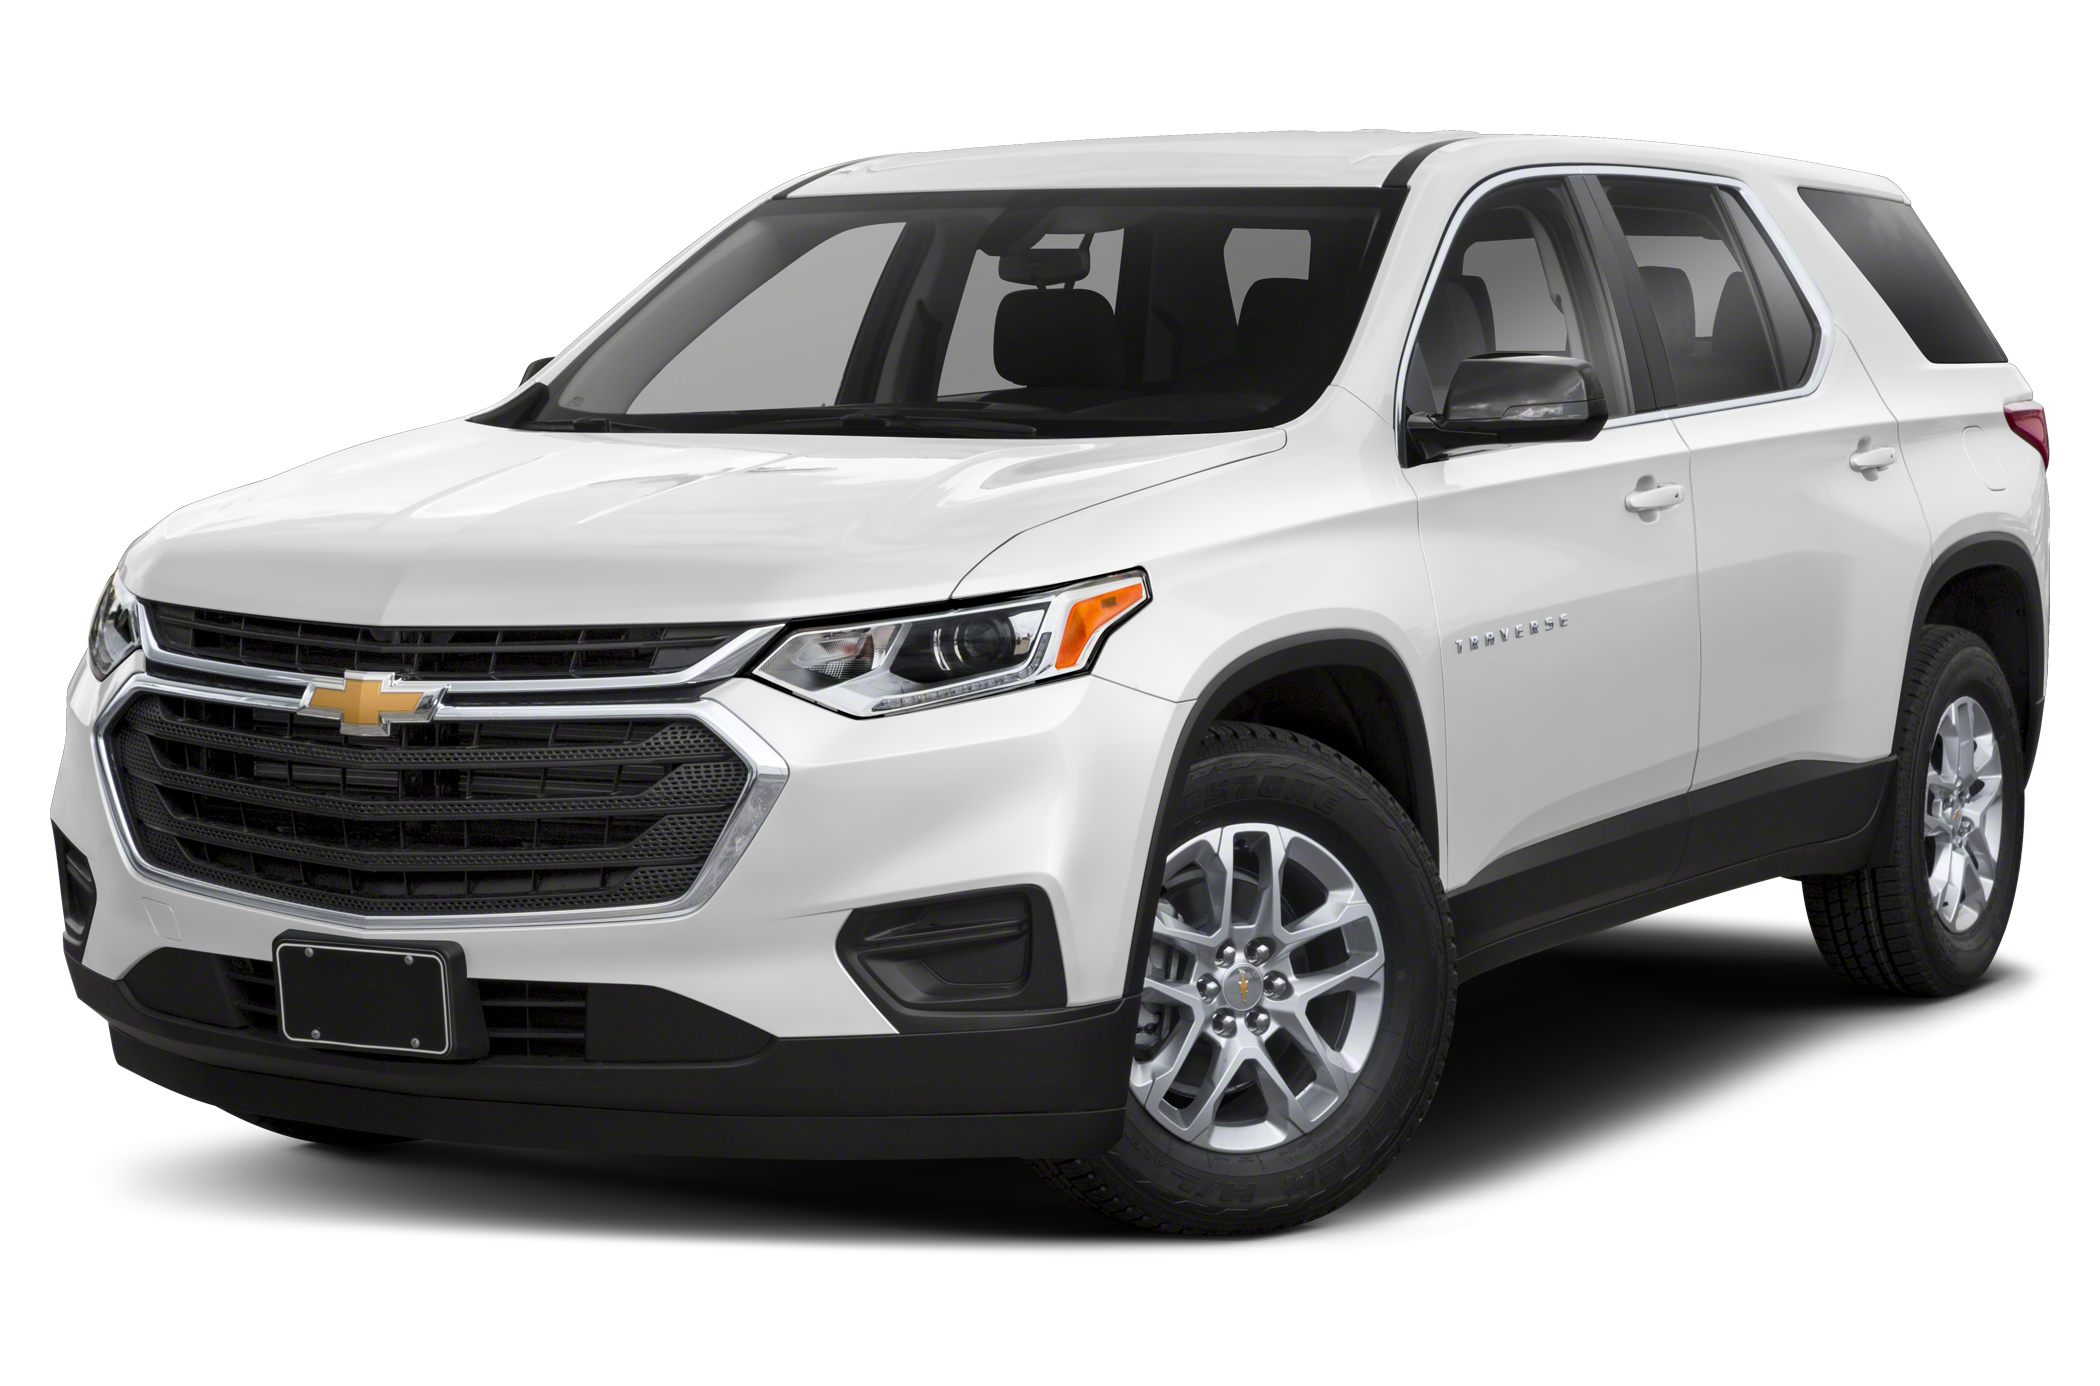 2020 Chevrolet Traverse Release Date And Price >> 2020 Chevrolet Traverse Information Autoblog